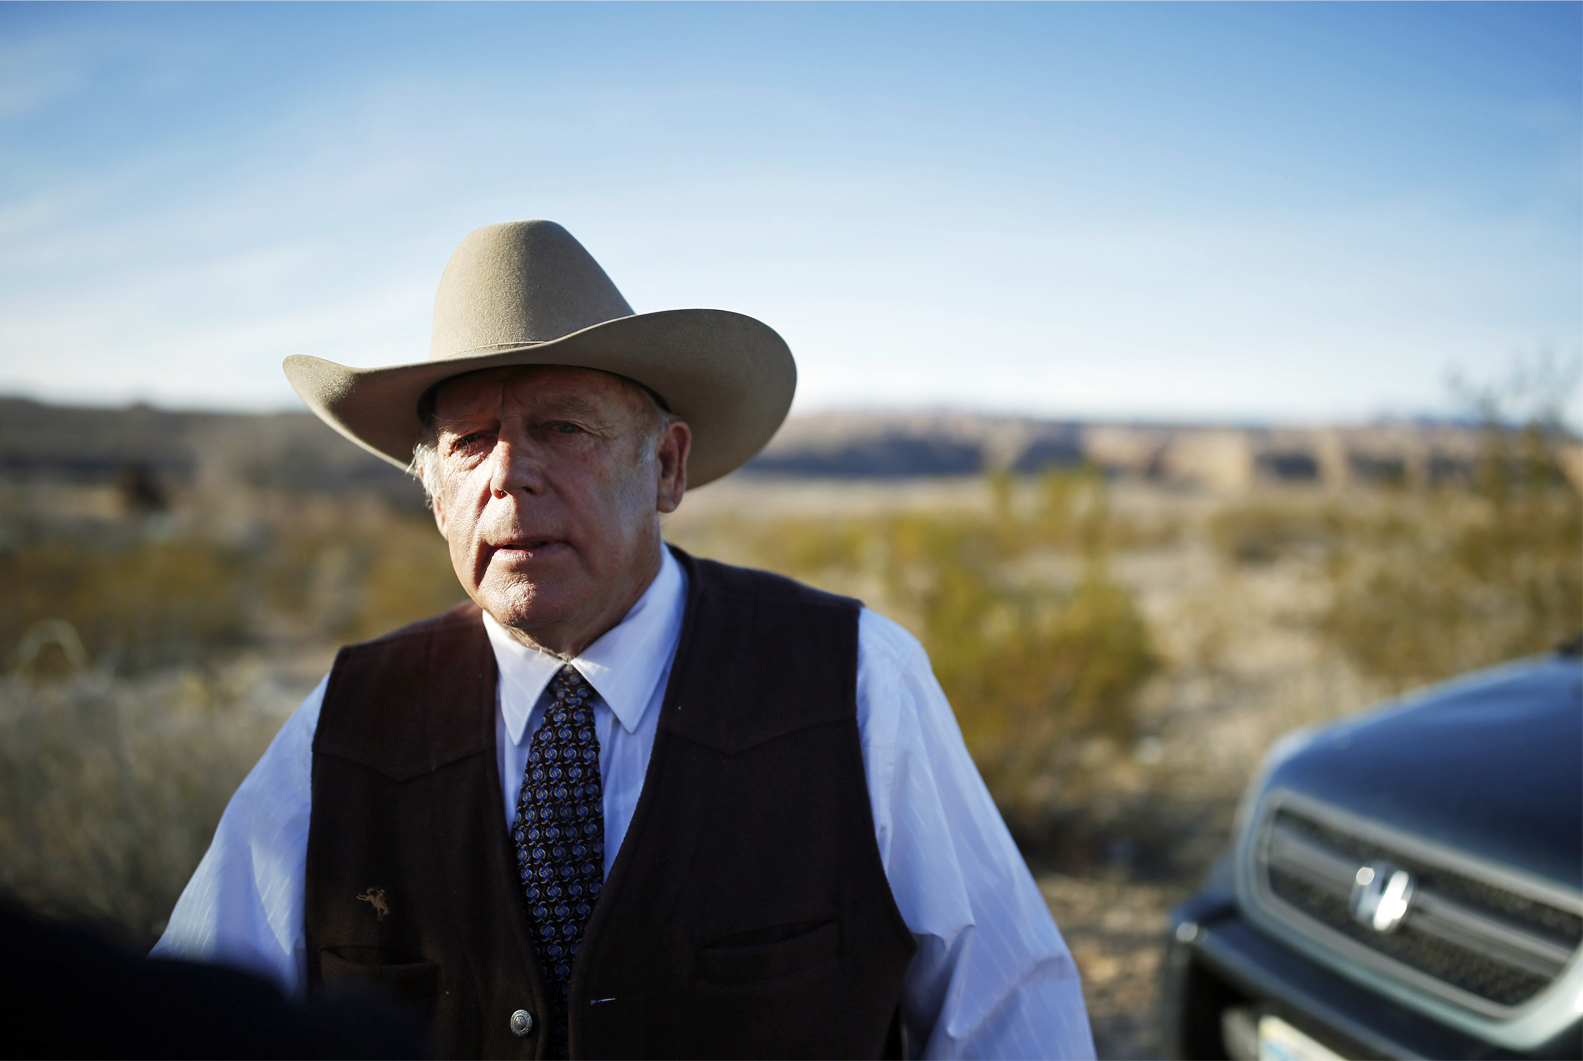 Rancher Cliven Bundy stands along the road near his ranch after speaking with media Wednesday, Jan. 27, 2016, in Bunkerville, Nev. (AP Photo/John Locher)